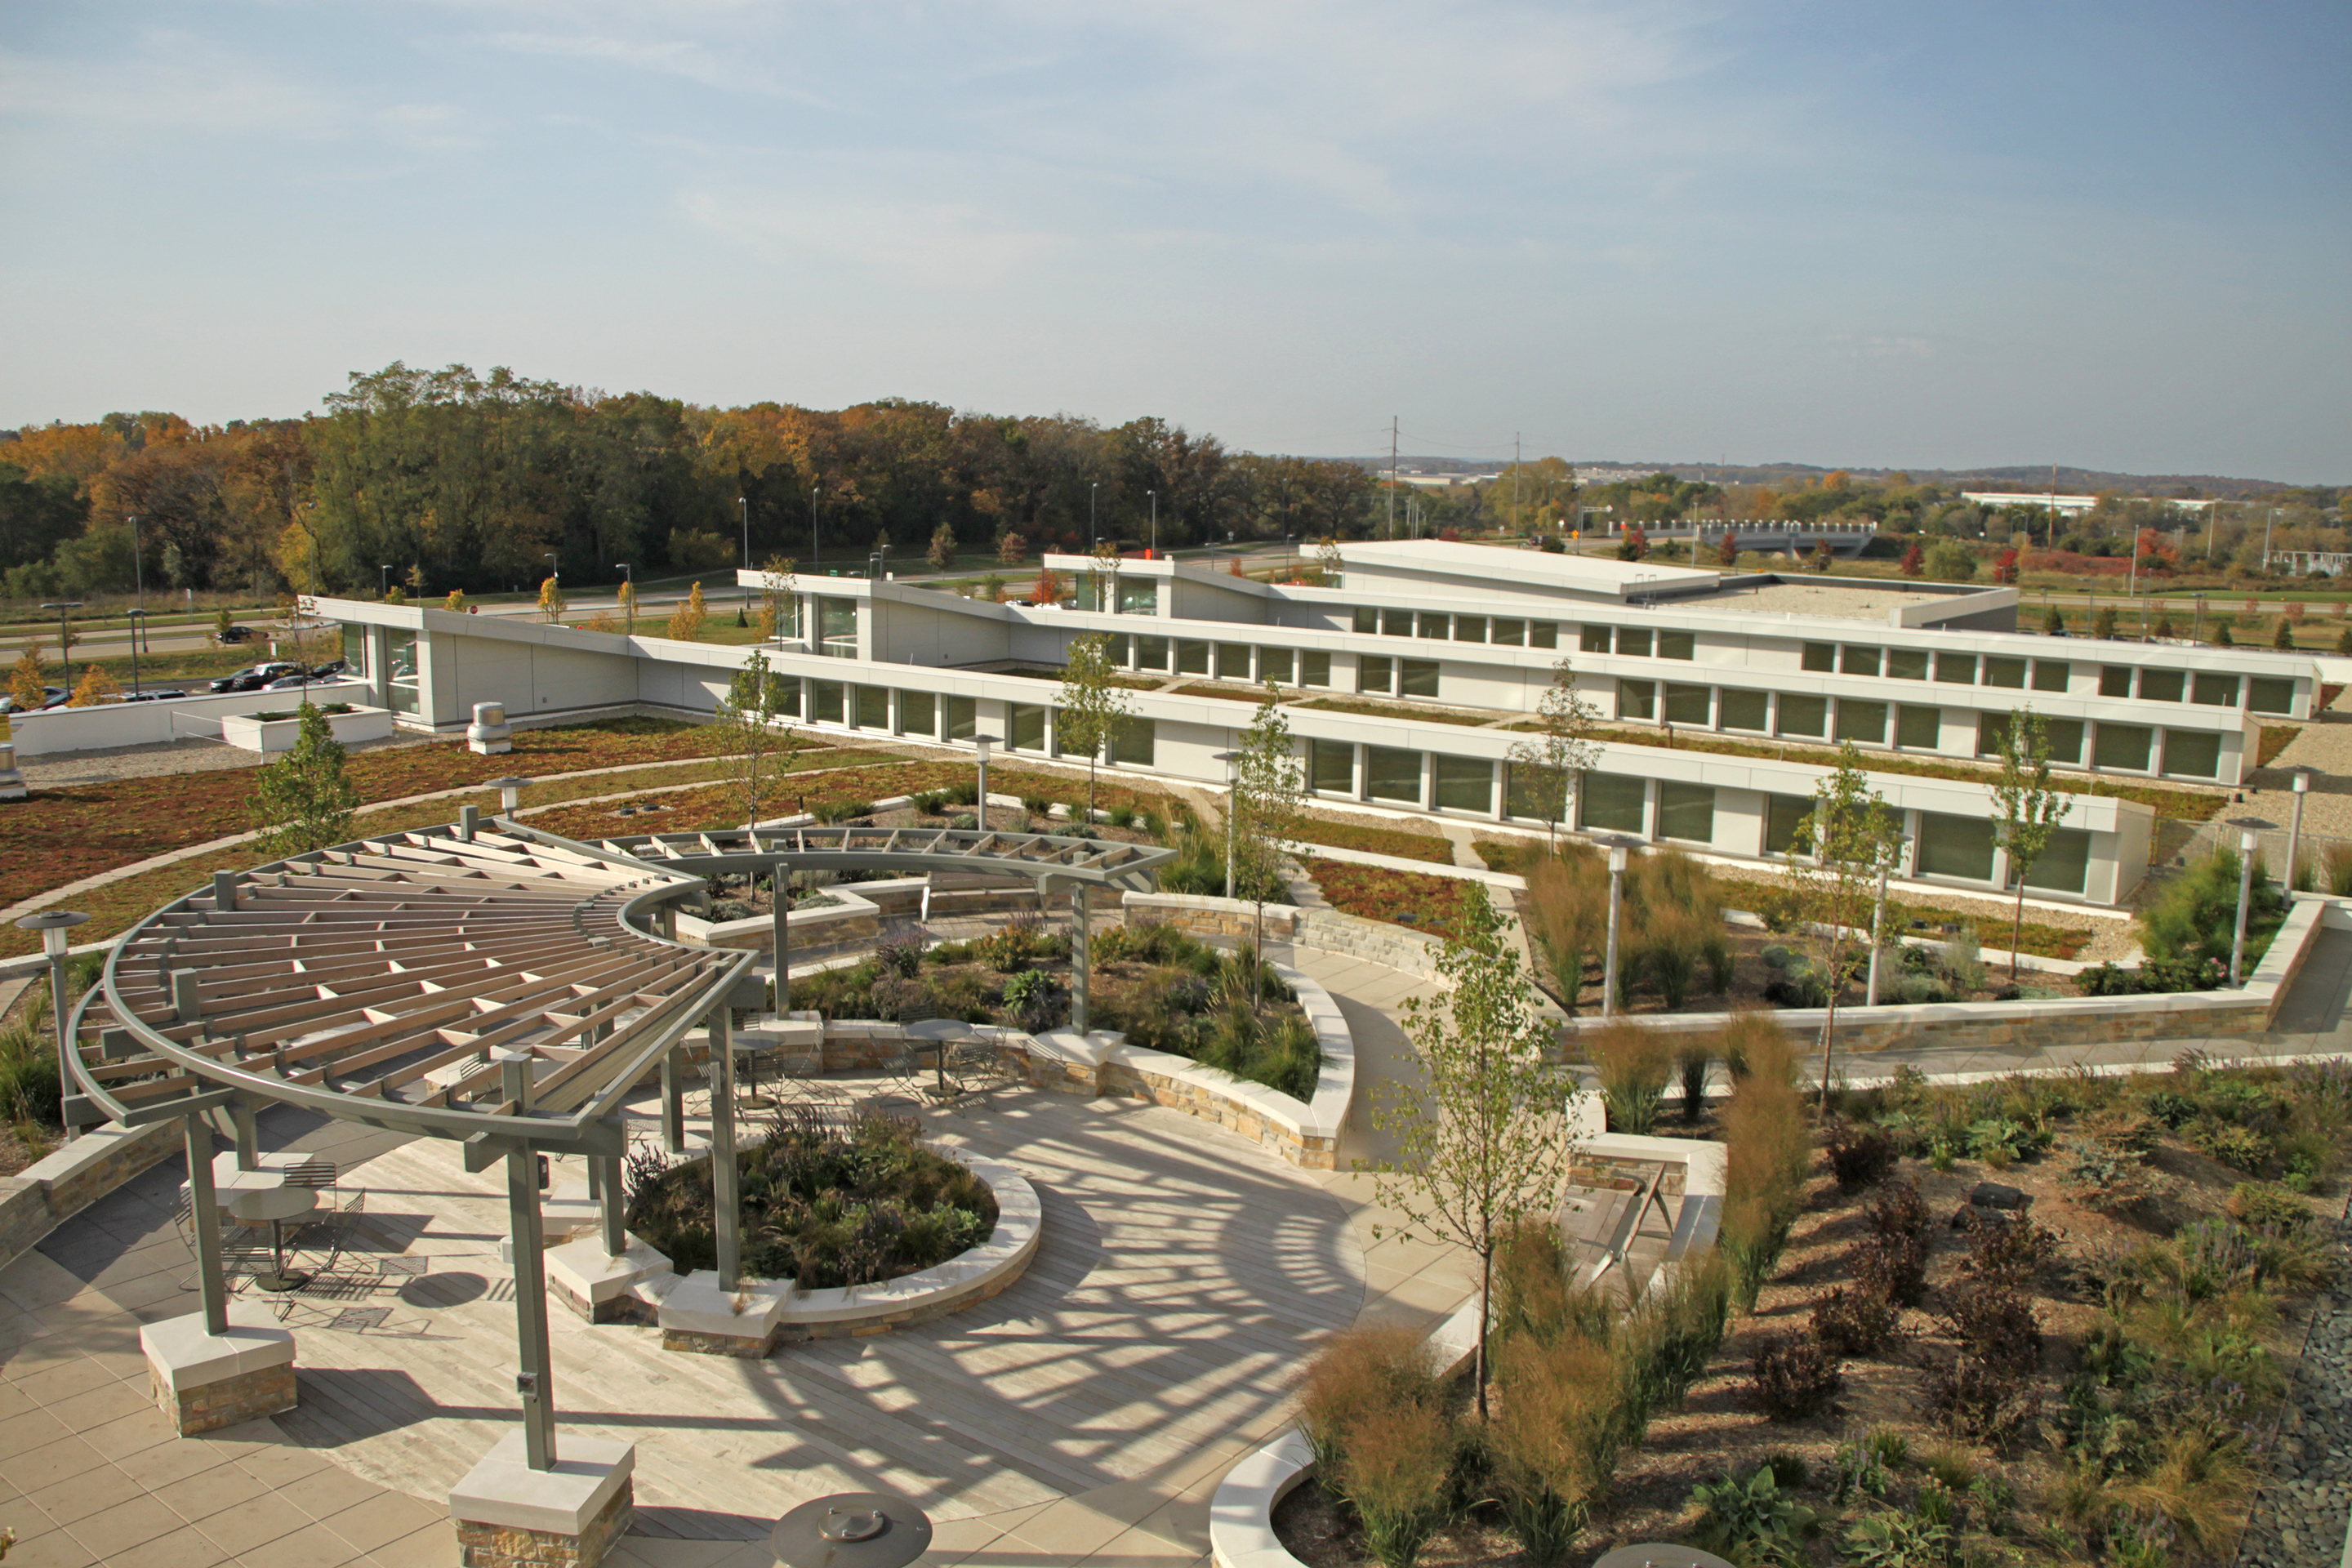 The roofs were designed to serve as an extension of the site; an intensive green roof adjacent to the hospital's cafeteria provides a looped path, seating, a shade structure and lush plantings.